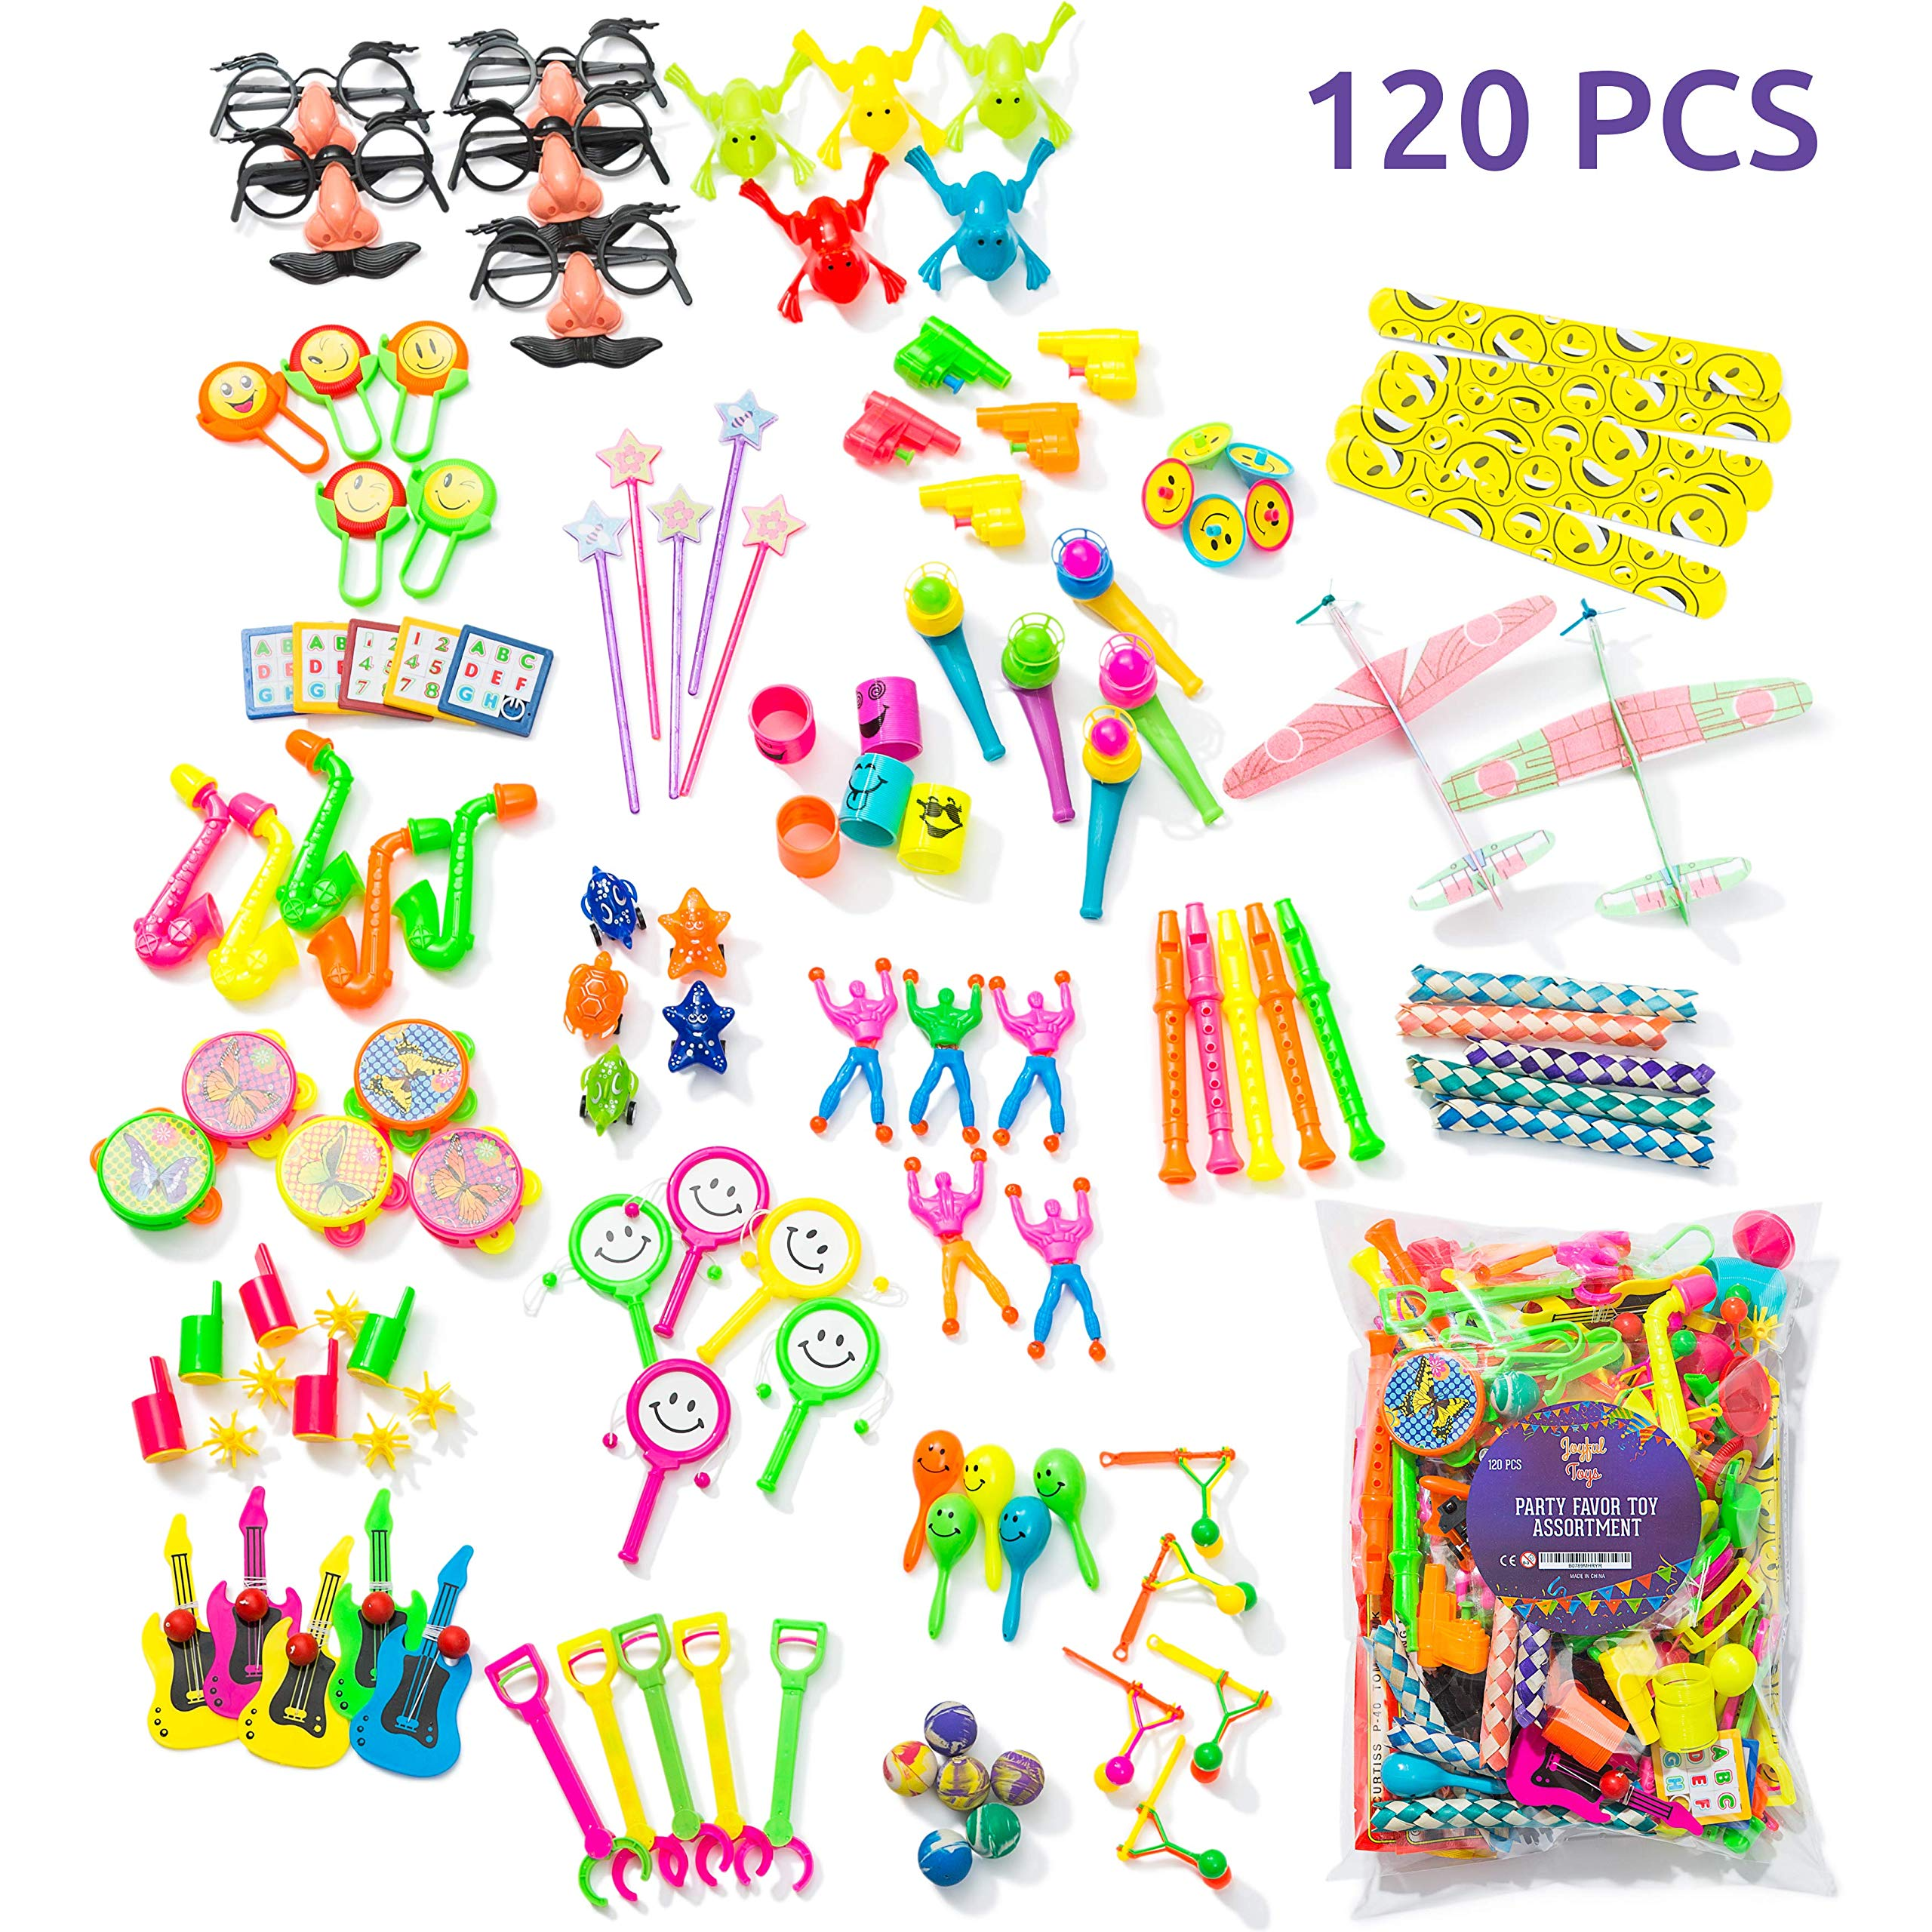 Party Favors For Kids Pack of 120 Pcs - Bulk Toys, Birthday Party, Goodie Bag, Piñata Filler, Treasure Box, Reading Prizes